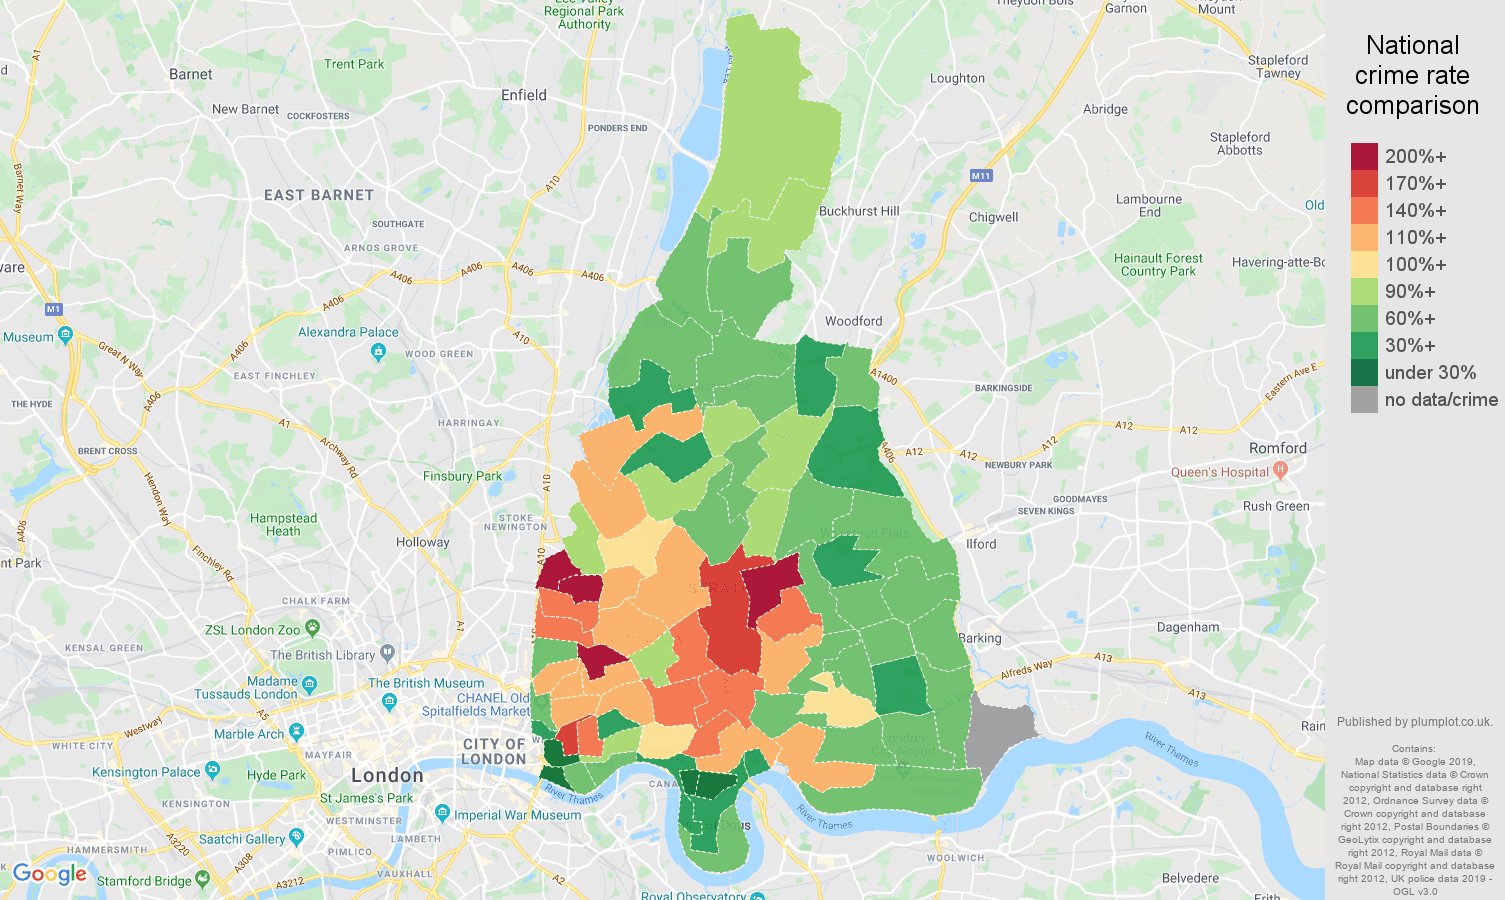 East London public order crime rate comparison map